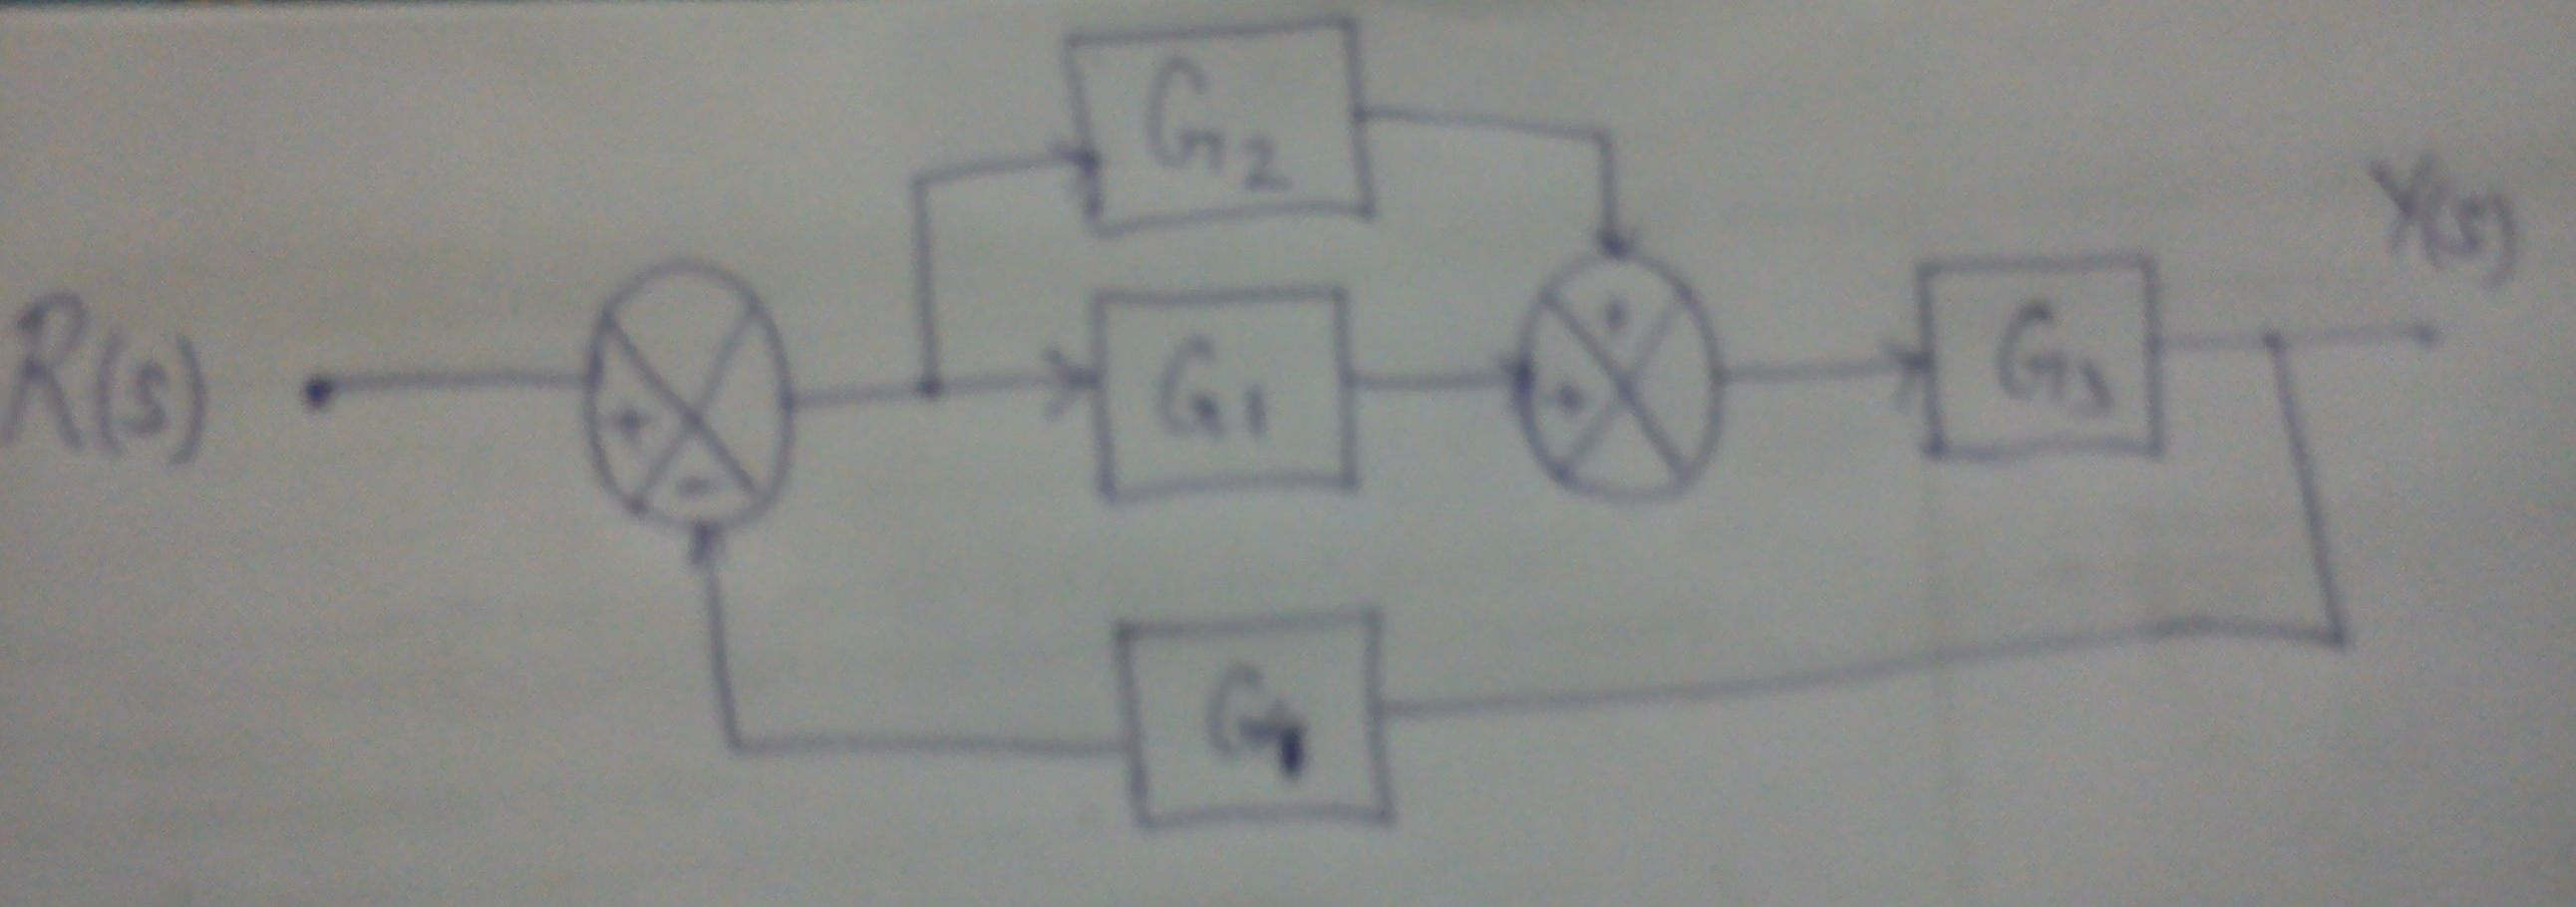 block diagram reduction matlab code